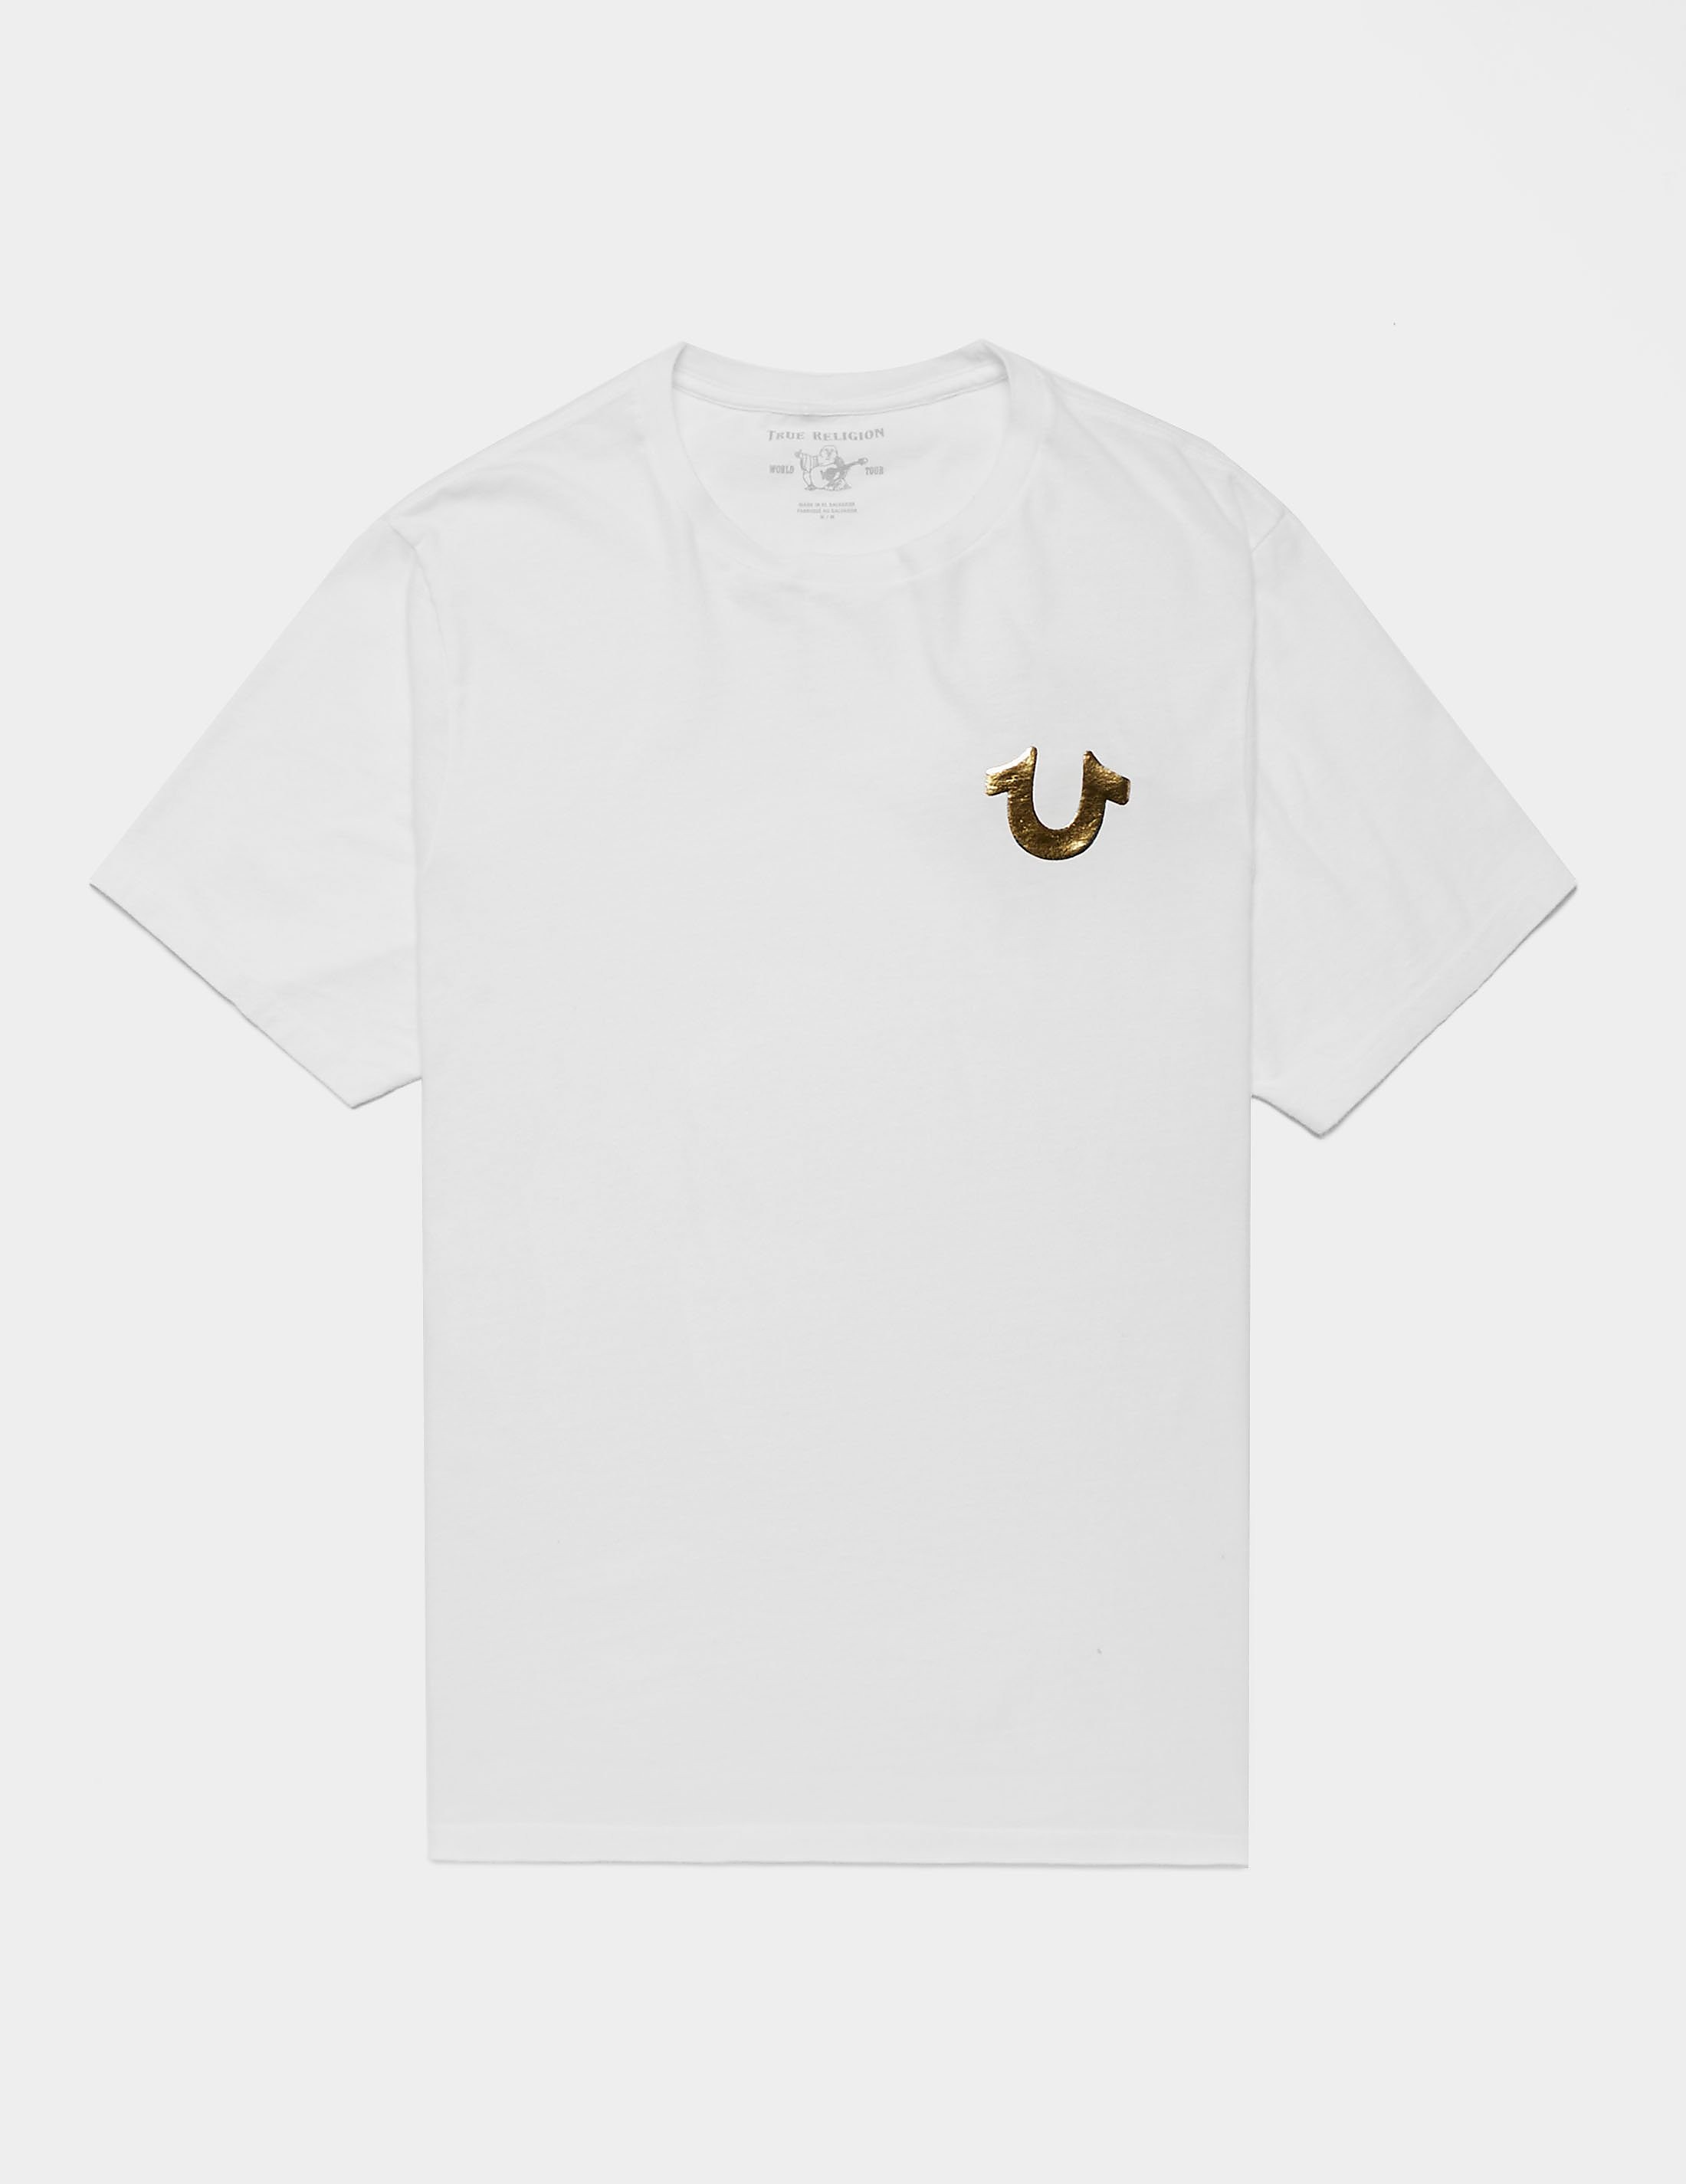 True Religion Gold Puff T-Shirt